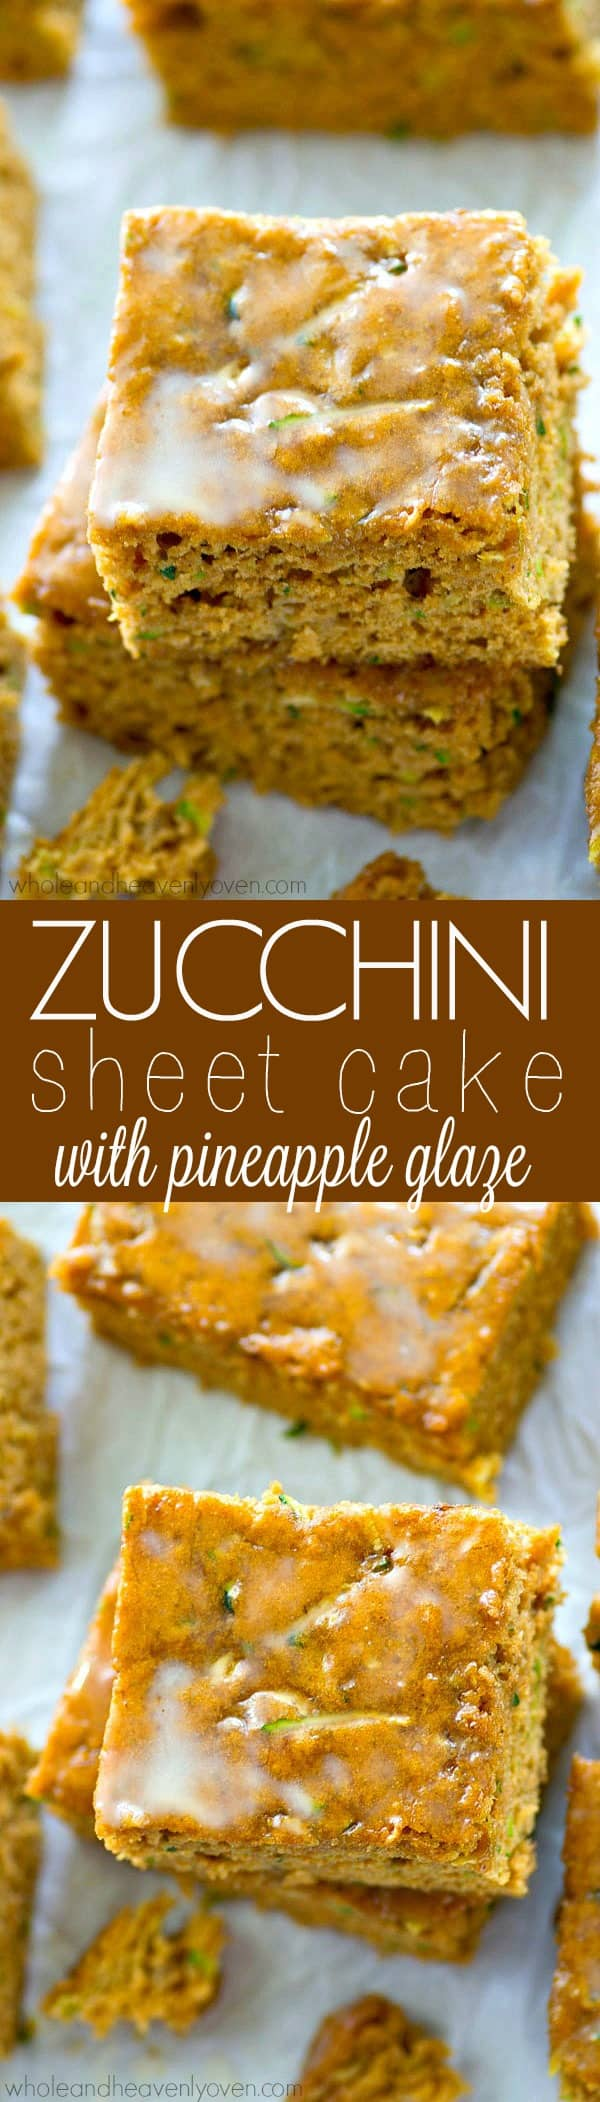 Unbelievably soft zucchini sheet cake gets dressed up in a tangy pineapple glaze for one healthy summer dessert you'll want to make ALL the time!---Only 129 calories per slice!